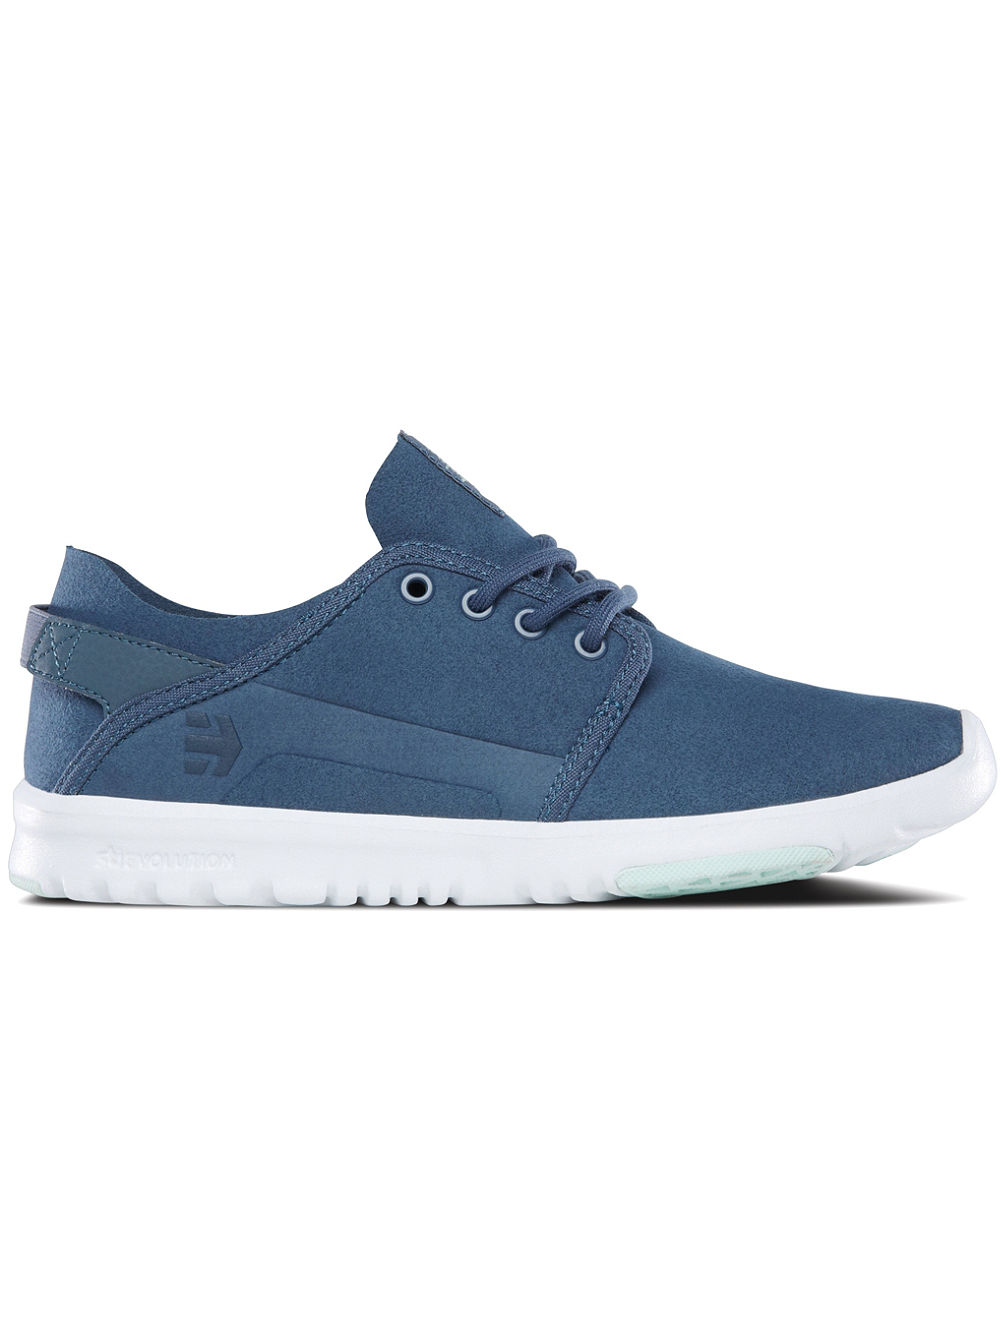 Scout Sneakers Women